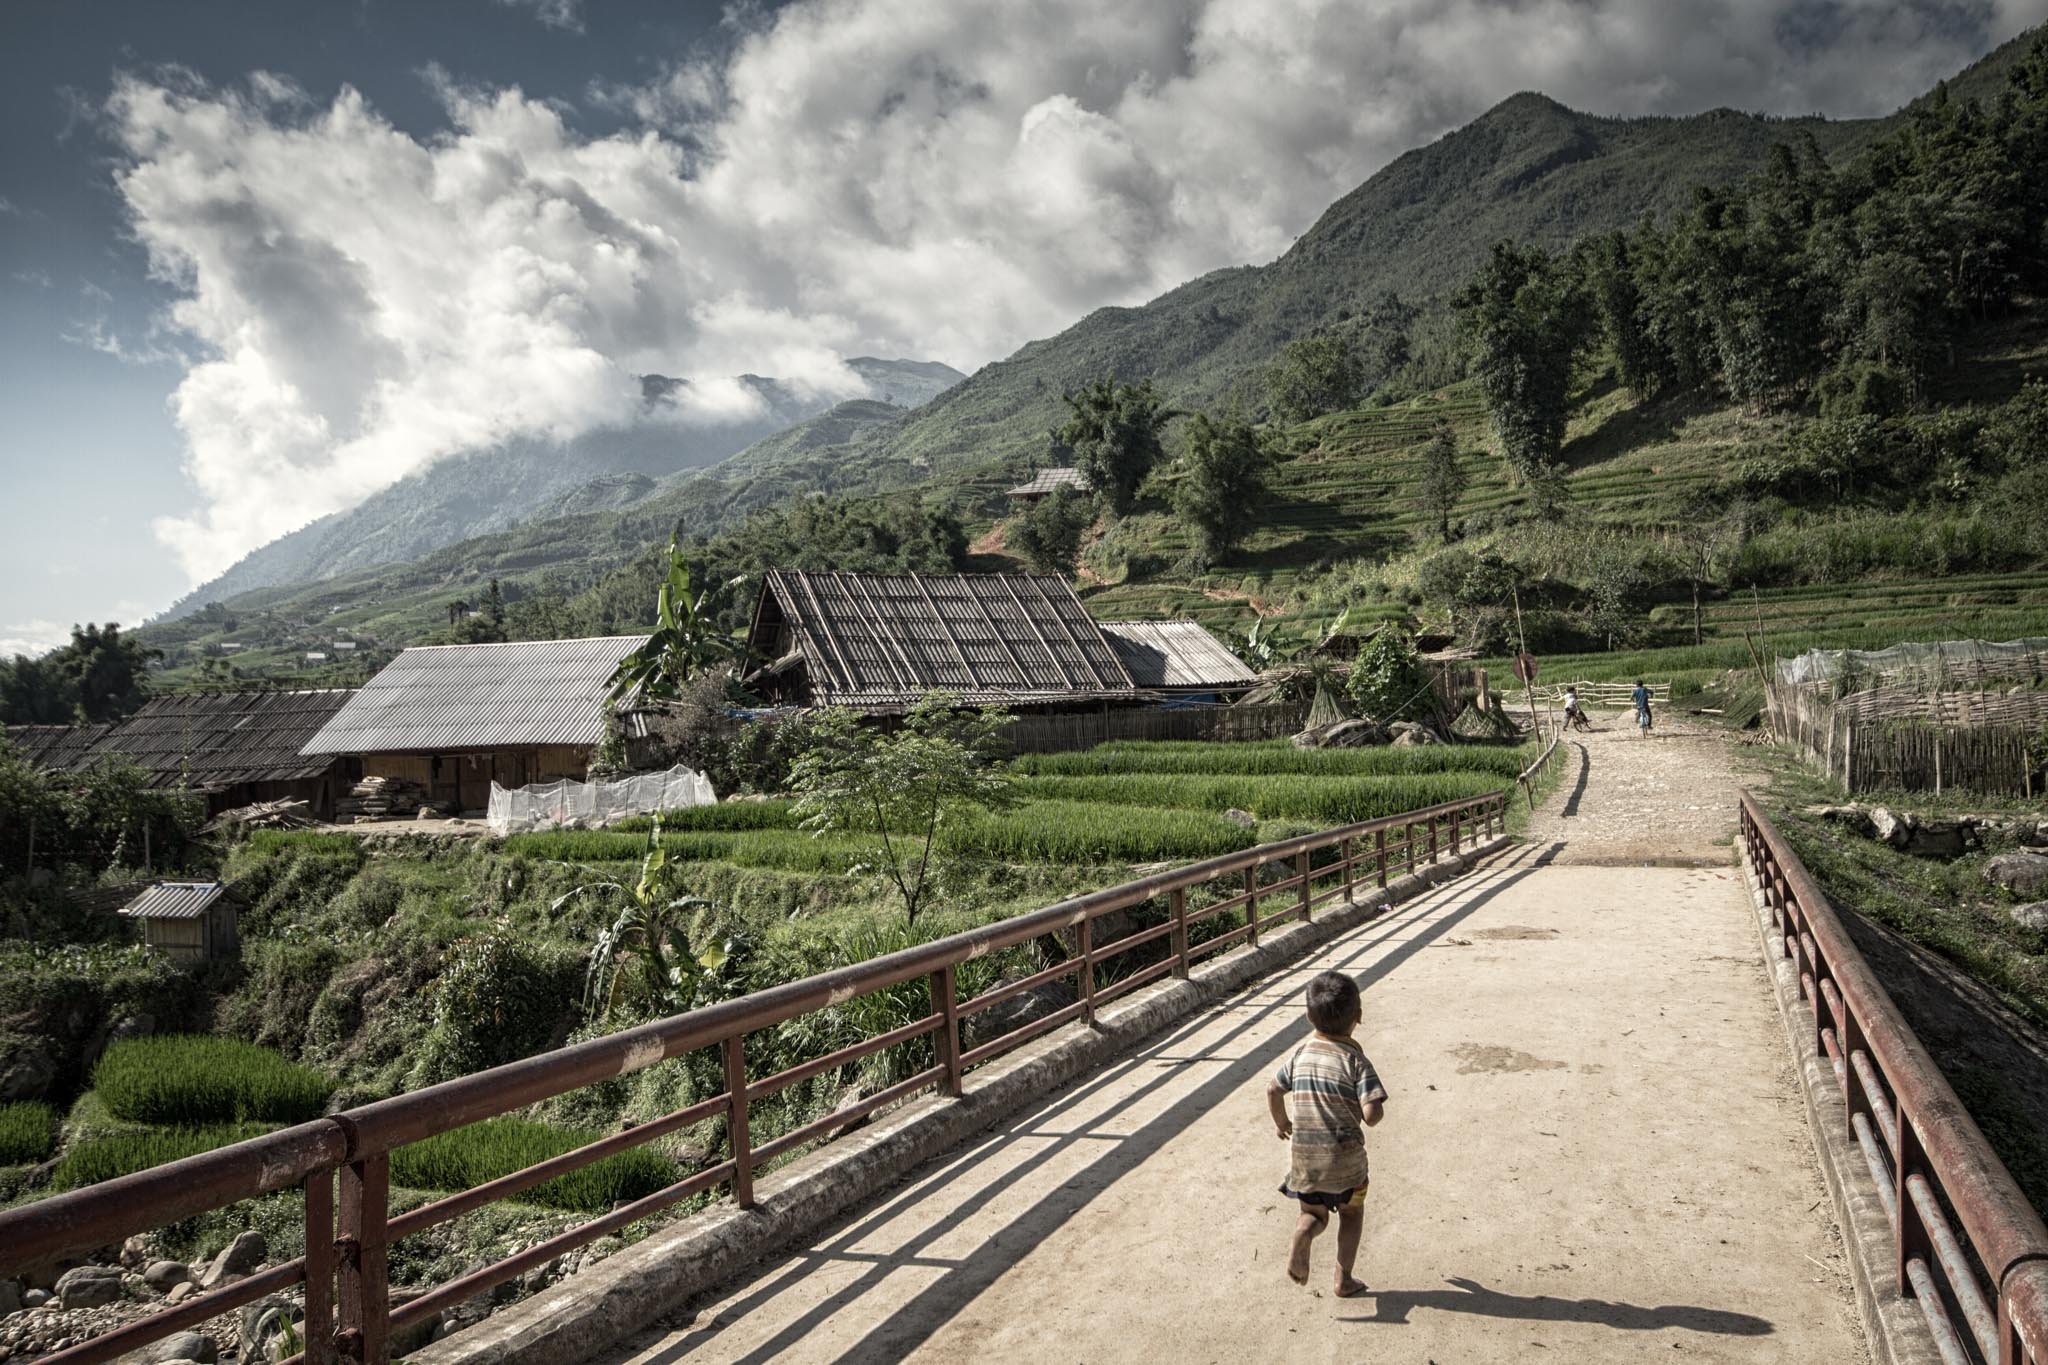 Village Life in the mountains of SaPa